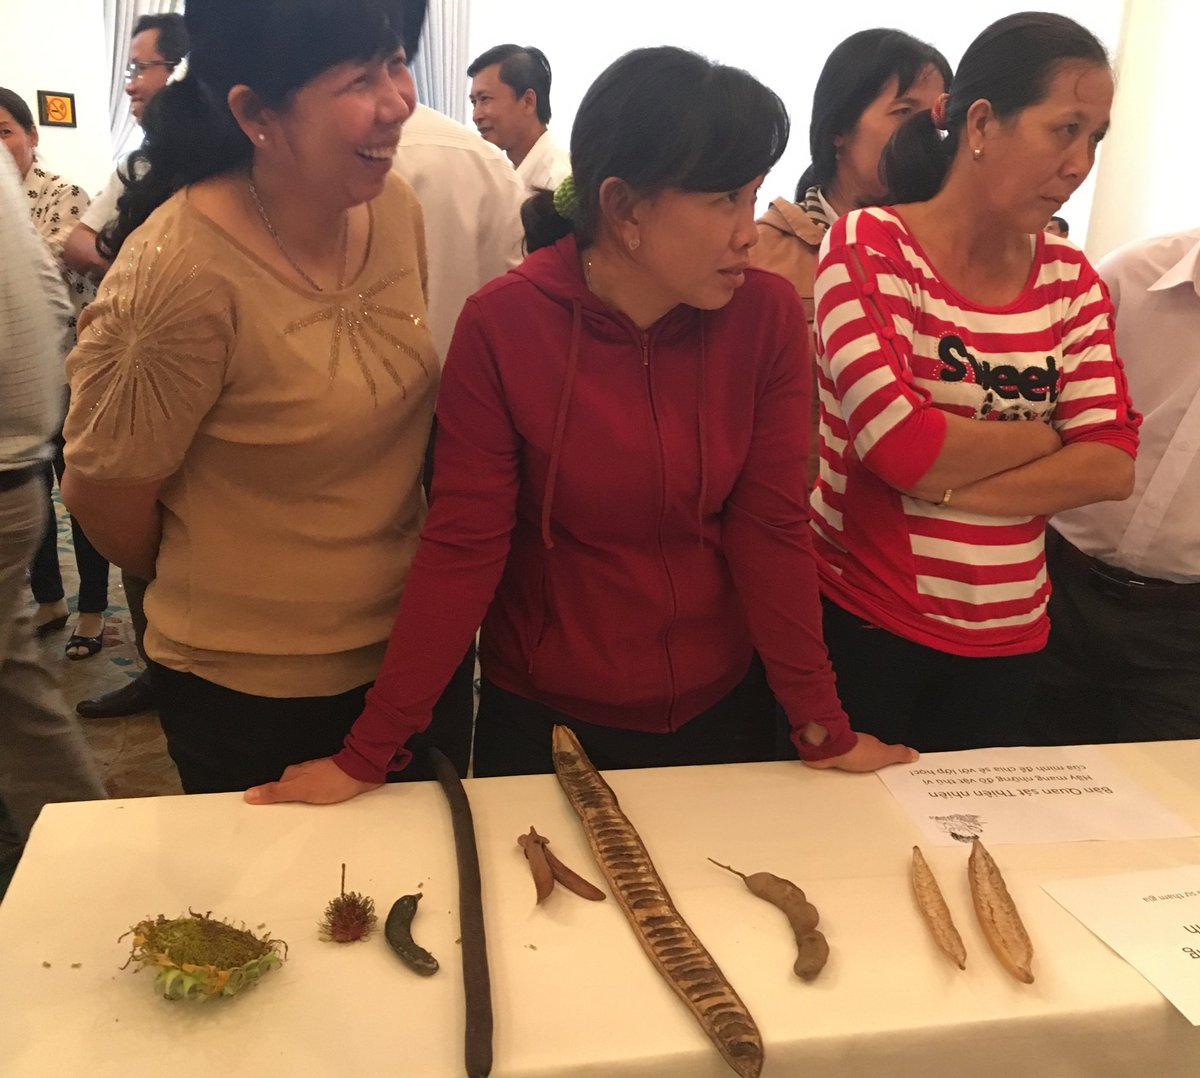 1* school teachers have fun with participatory science activities. @OUCRU_Vietnam #Publicengagement. <br>http://pic.twitter.com/Vt1XA1ZN9b